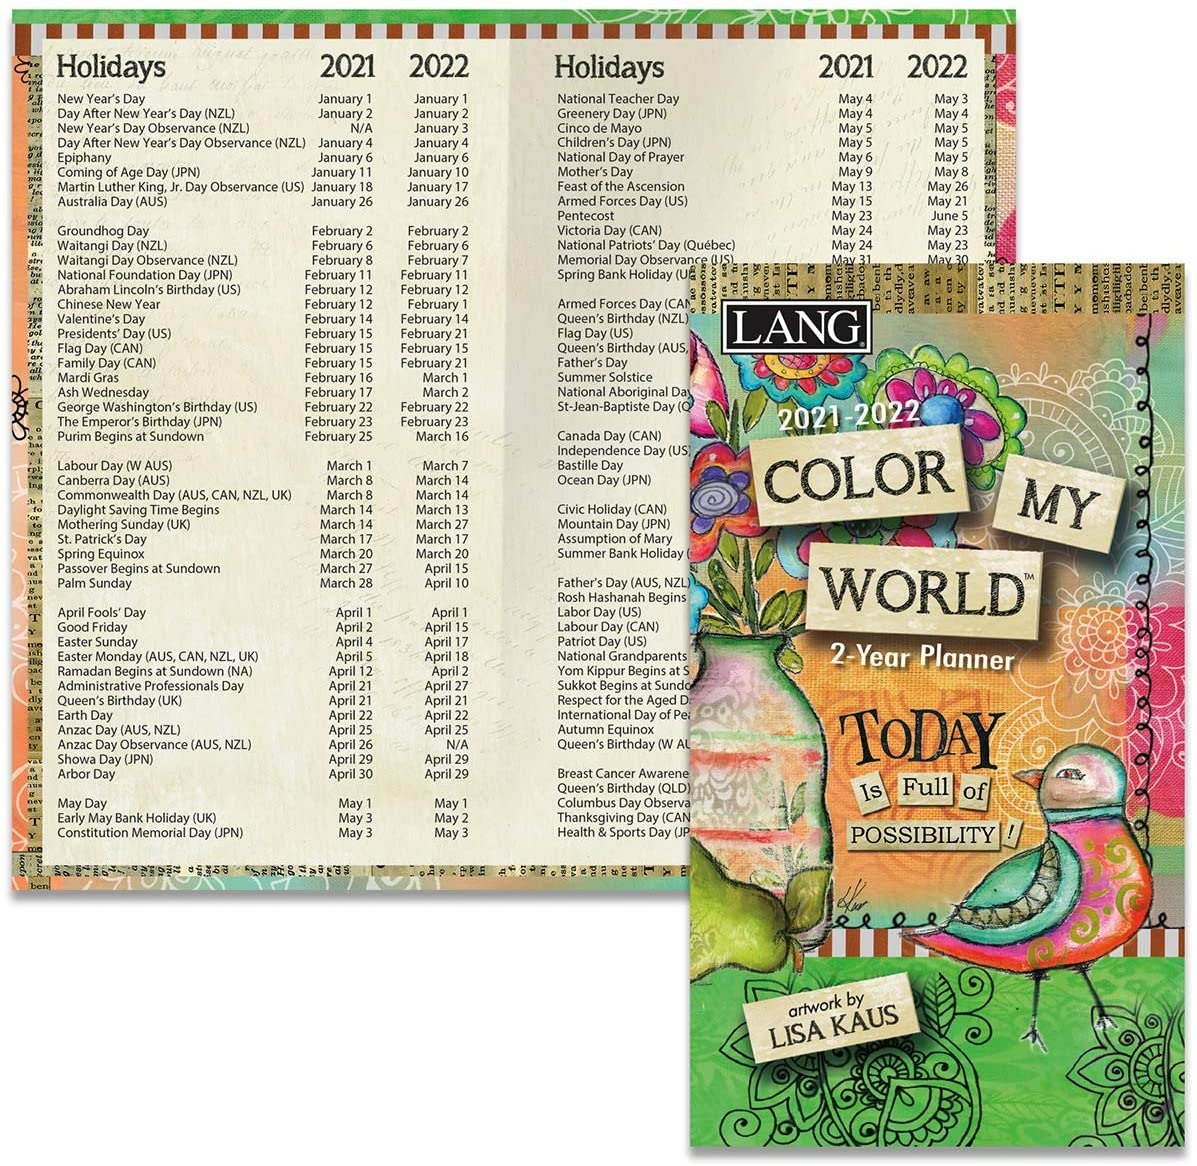 LANG Color My World 2021 Two Year Planner (21991071088)